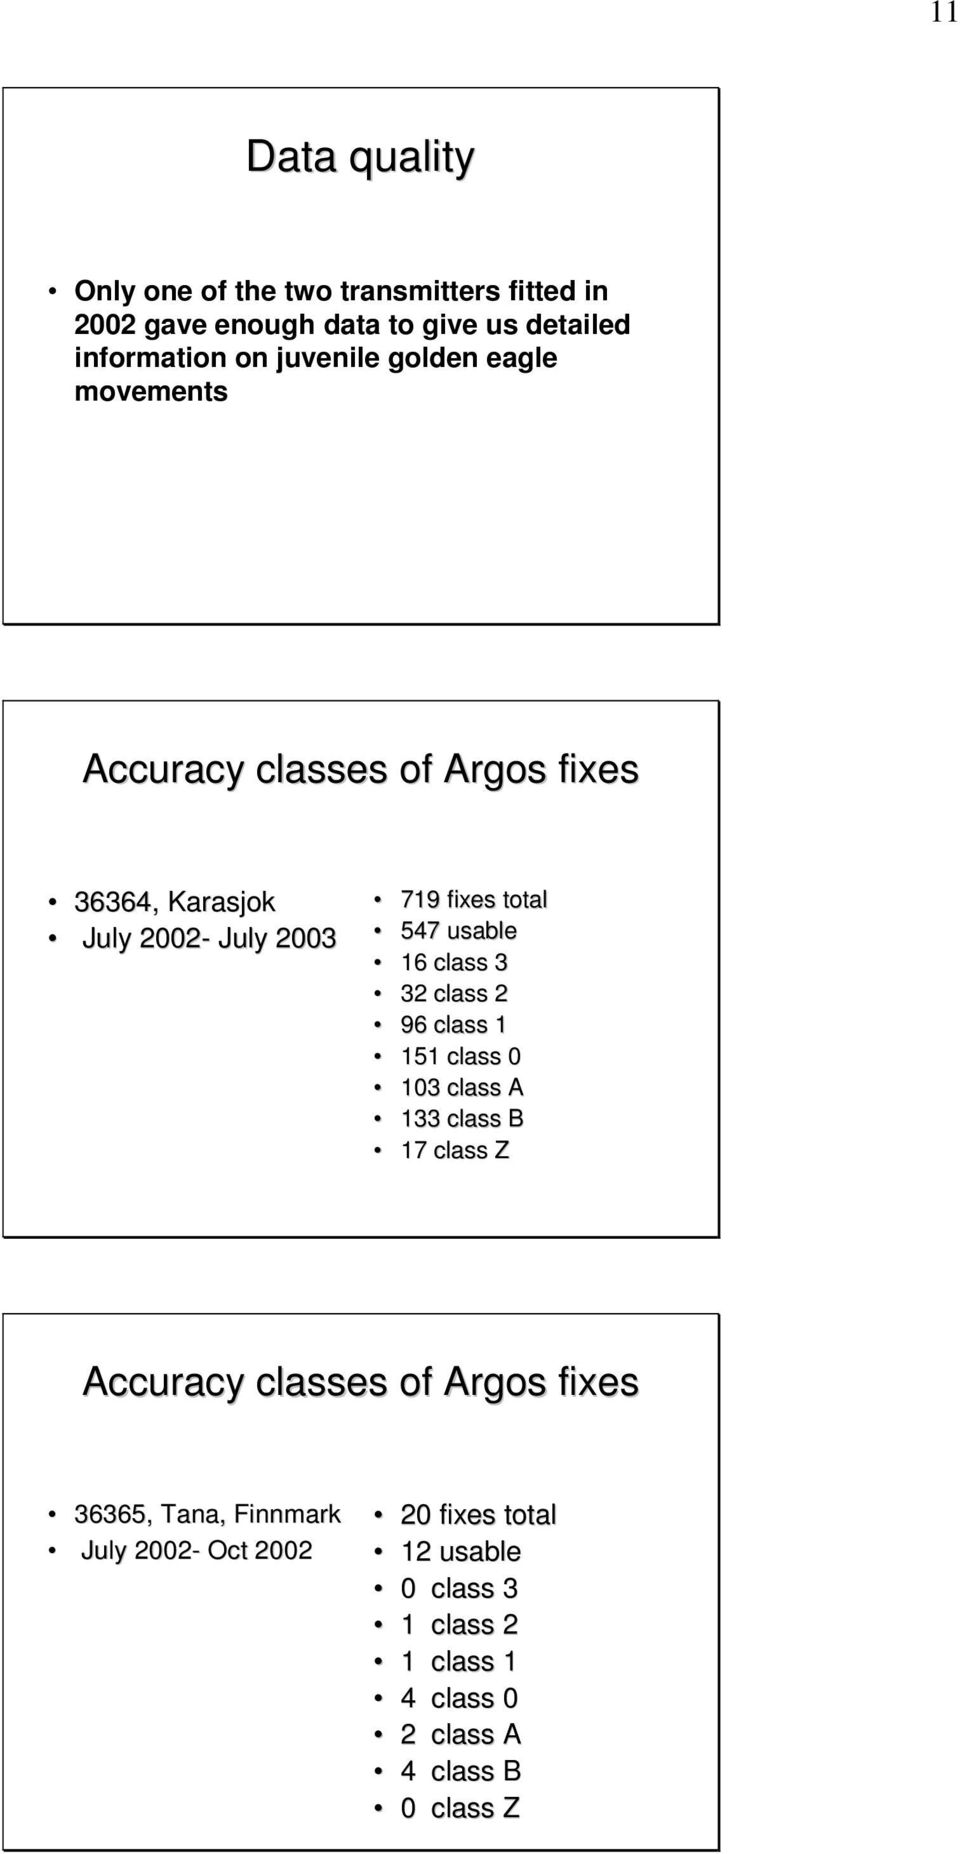 usable 16 class 3 32 class 2 96 class 1 151 class 0 103 class A 133 class B 17 class Z Accuracy classes of Argos fixes